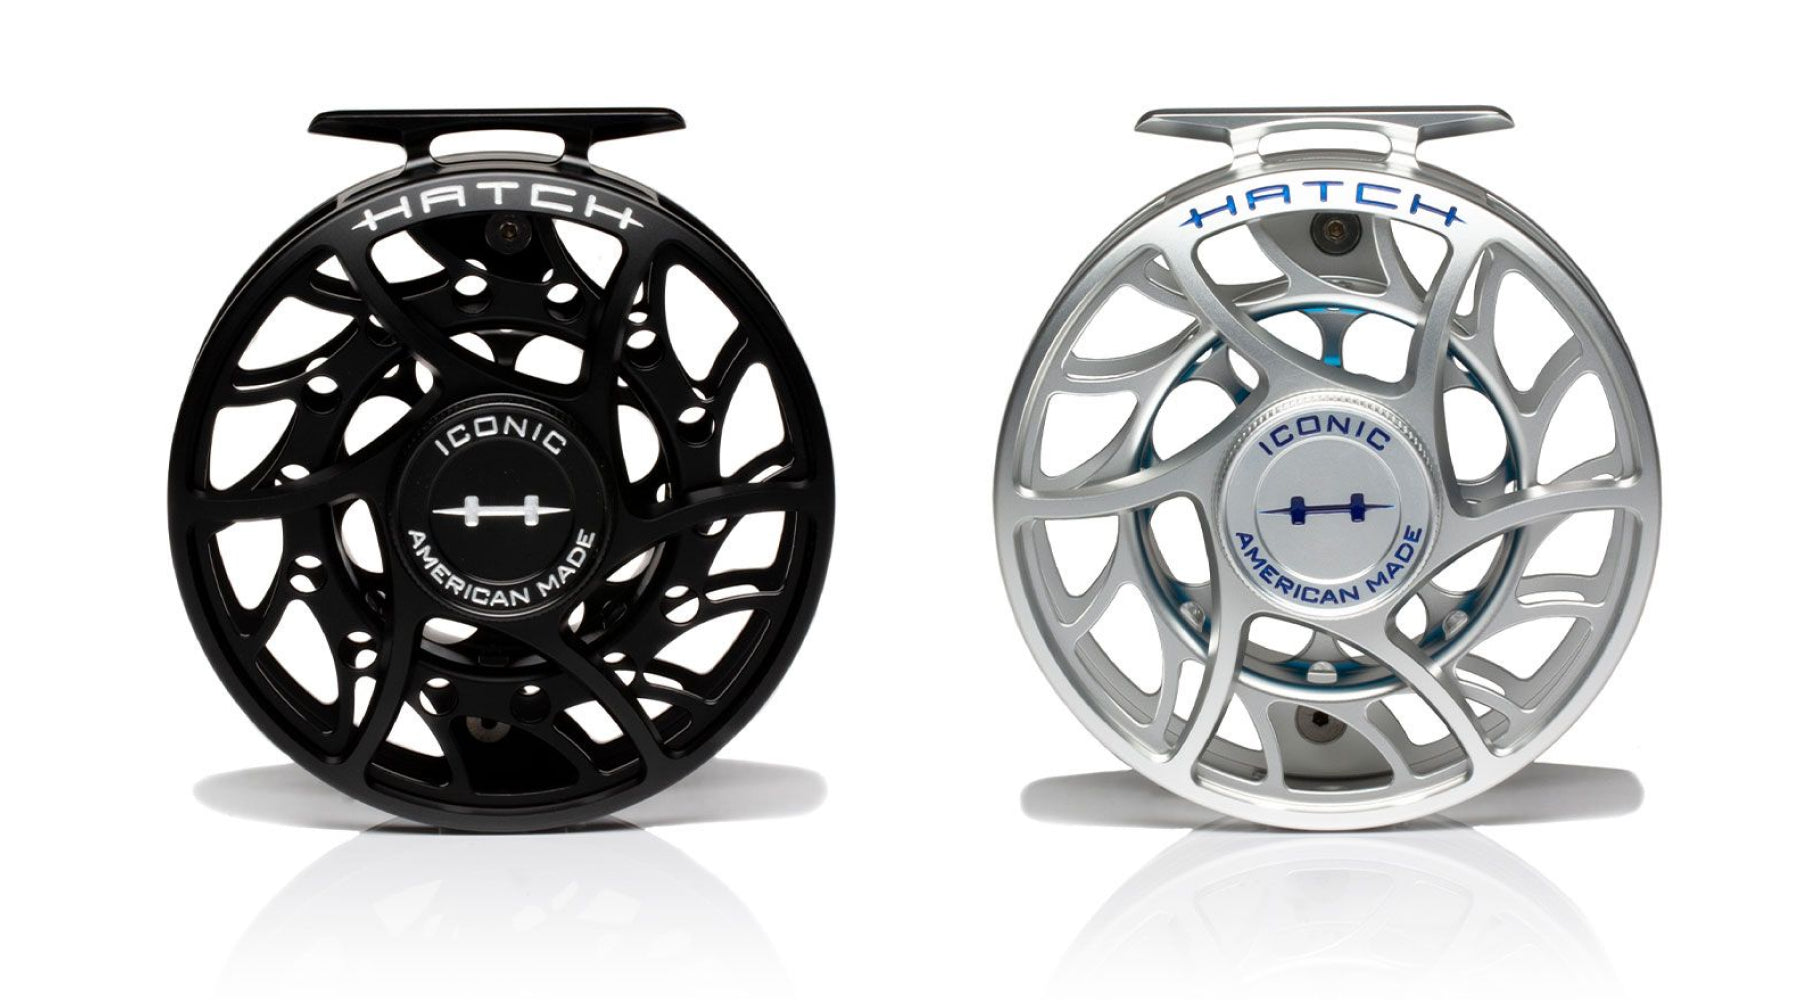 Hatch Iconic Fly Reel Review